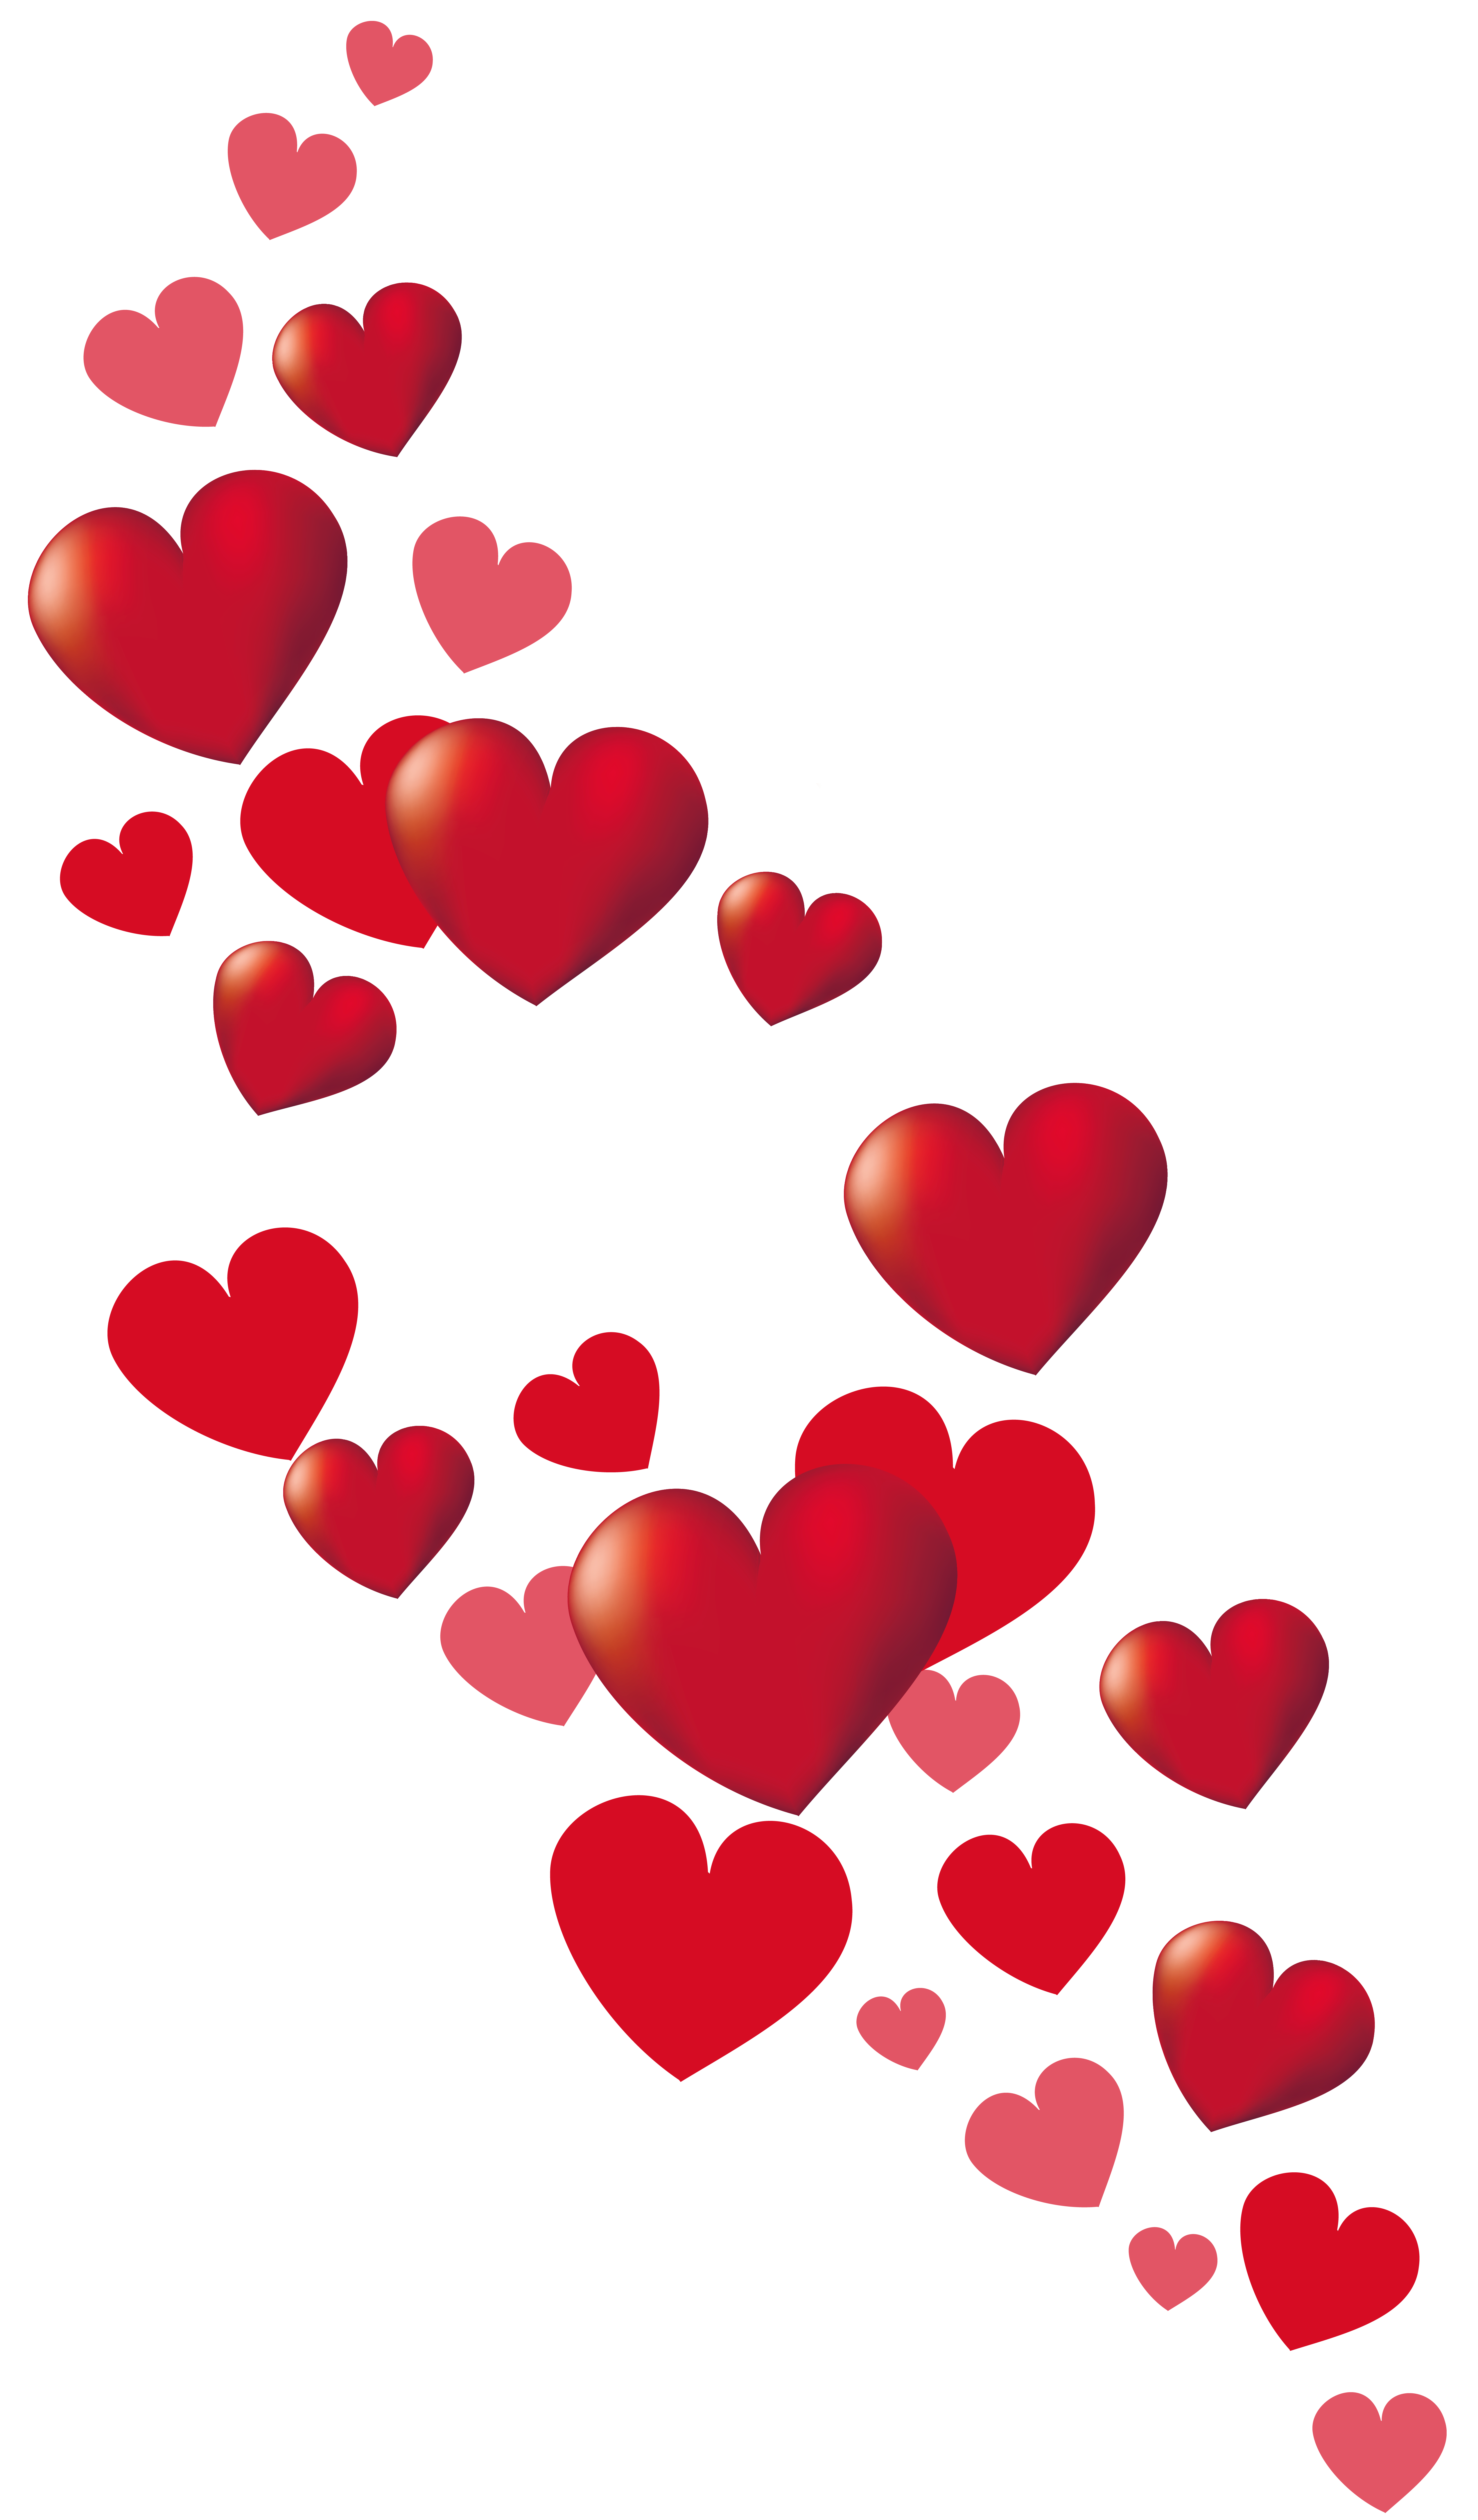 clipart transparent library Anime clipart valentines day. Valentine hearts decor png.